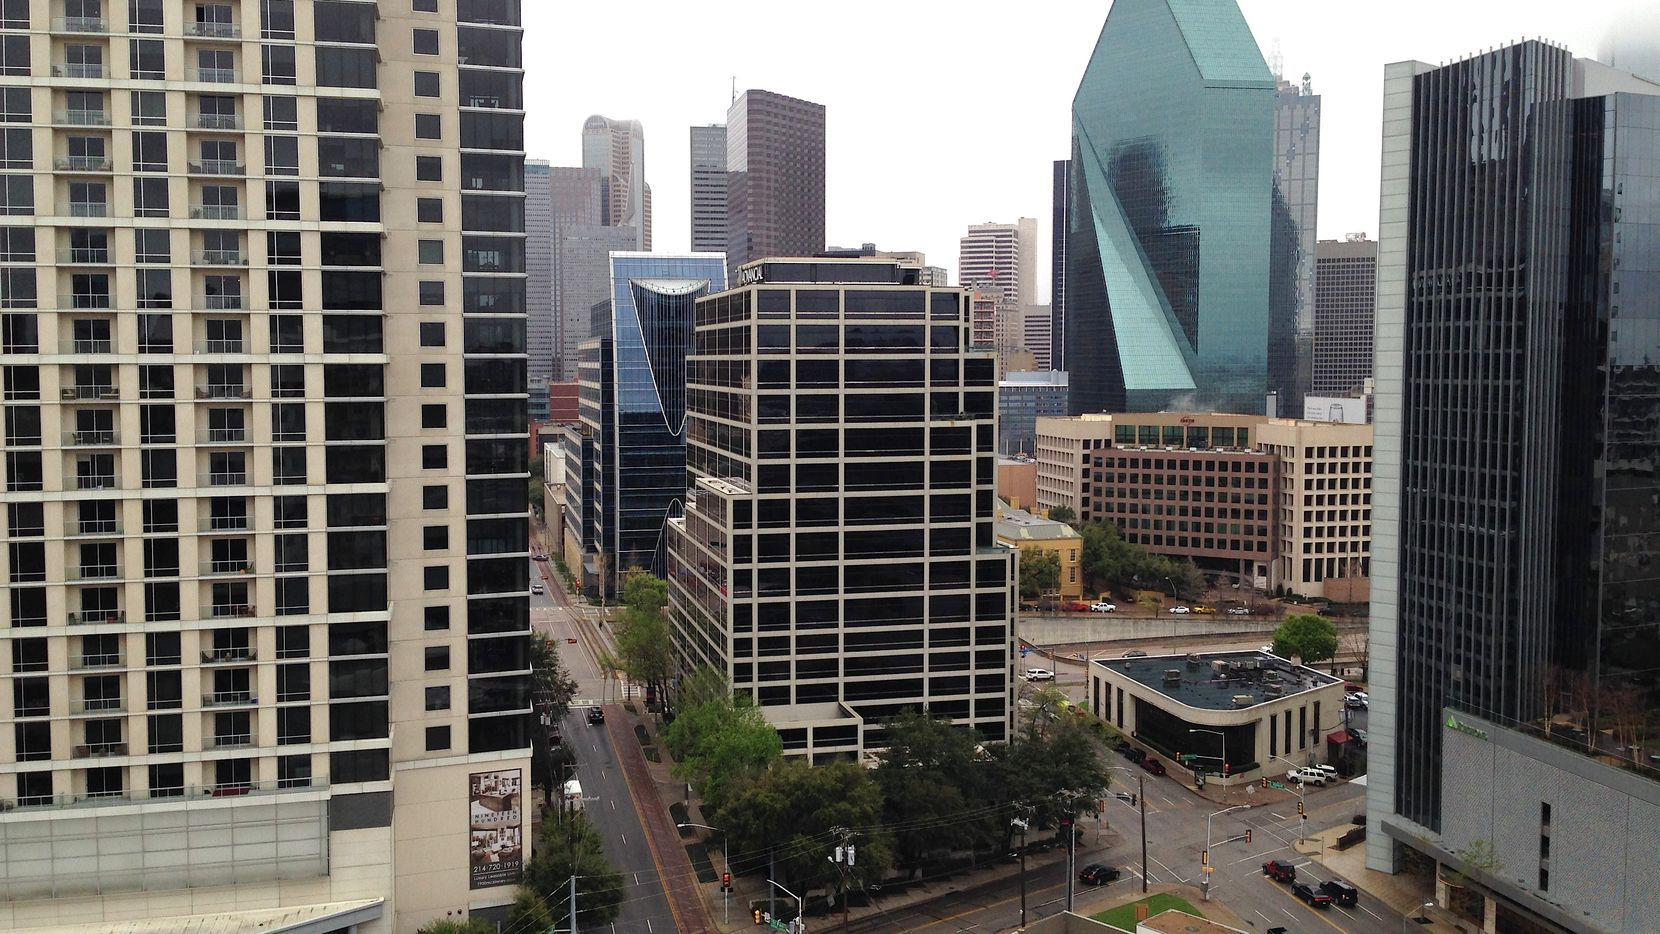 Dallas-area office vacancy rates totaled 19% in February, the second-highest in the country, according to a new report.